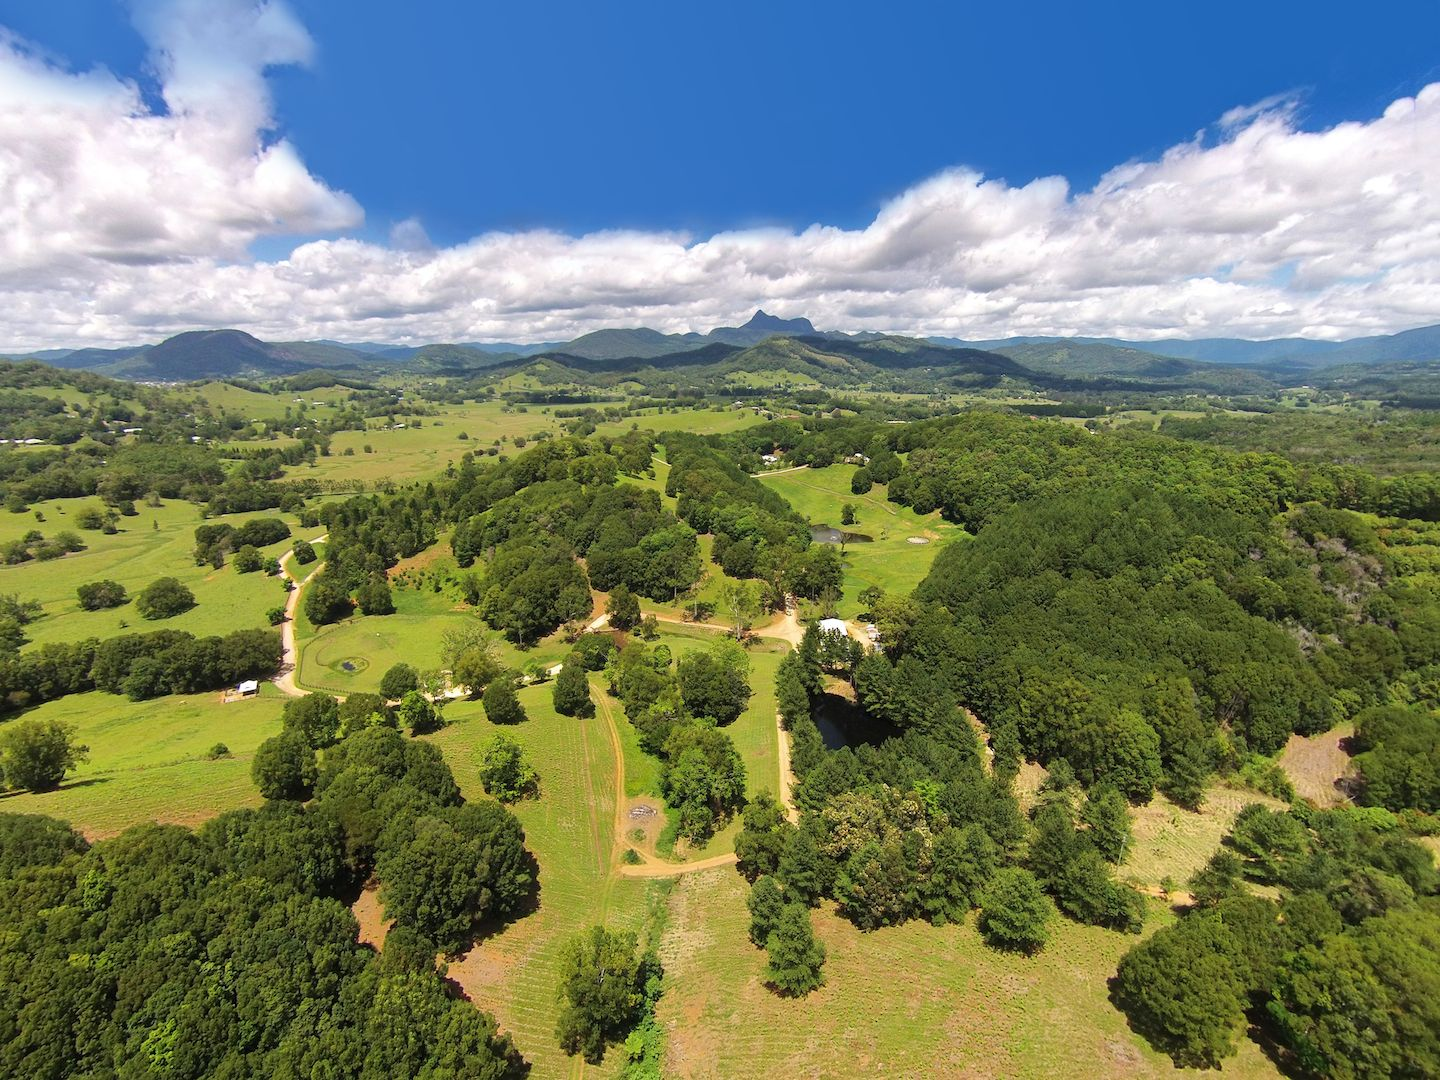 Ferme / Ranch / Plantation pour l Vente à Rosehill Estate - A hinterland paradise Nobbys Creek, New South Wales,2484 Australie